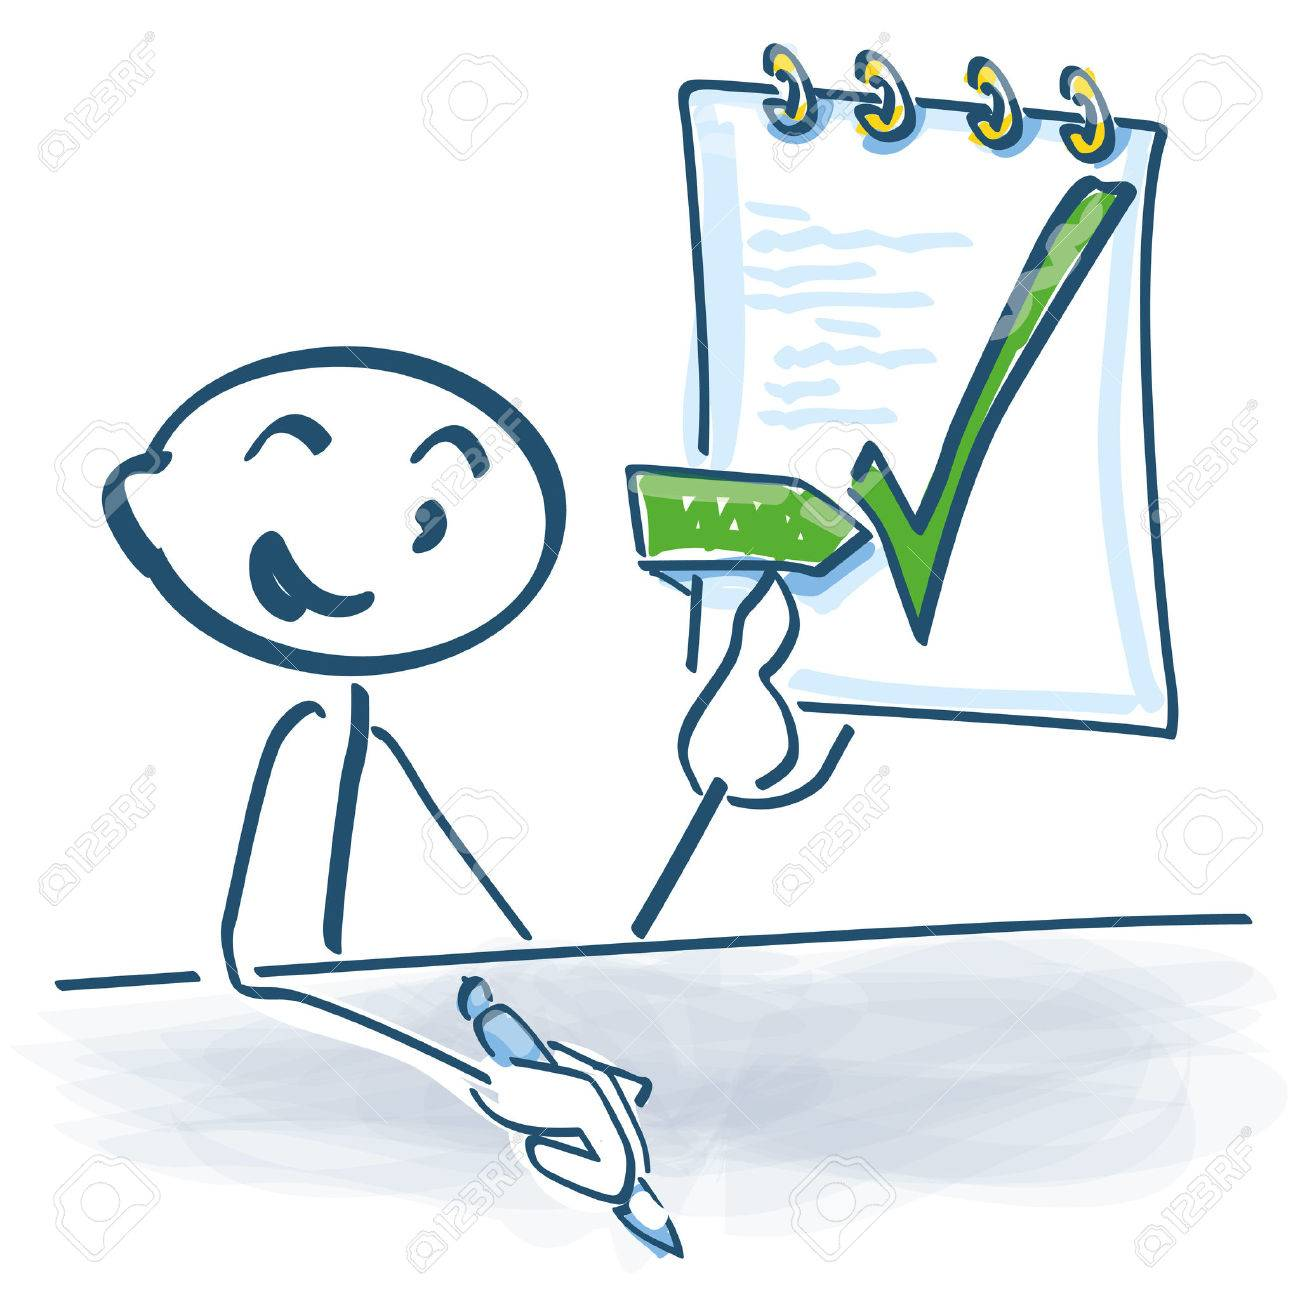 Stick figure has completed and signed the work contract - 56719804